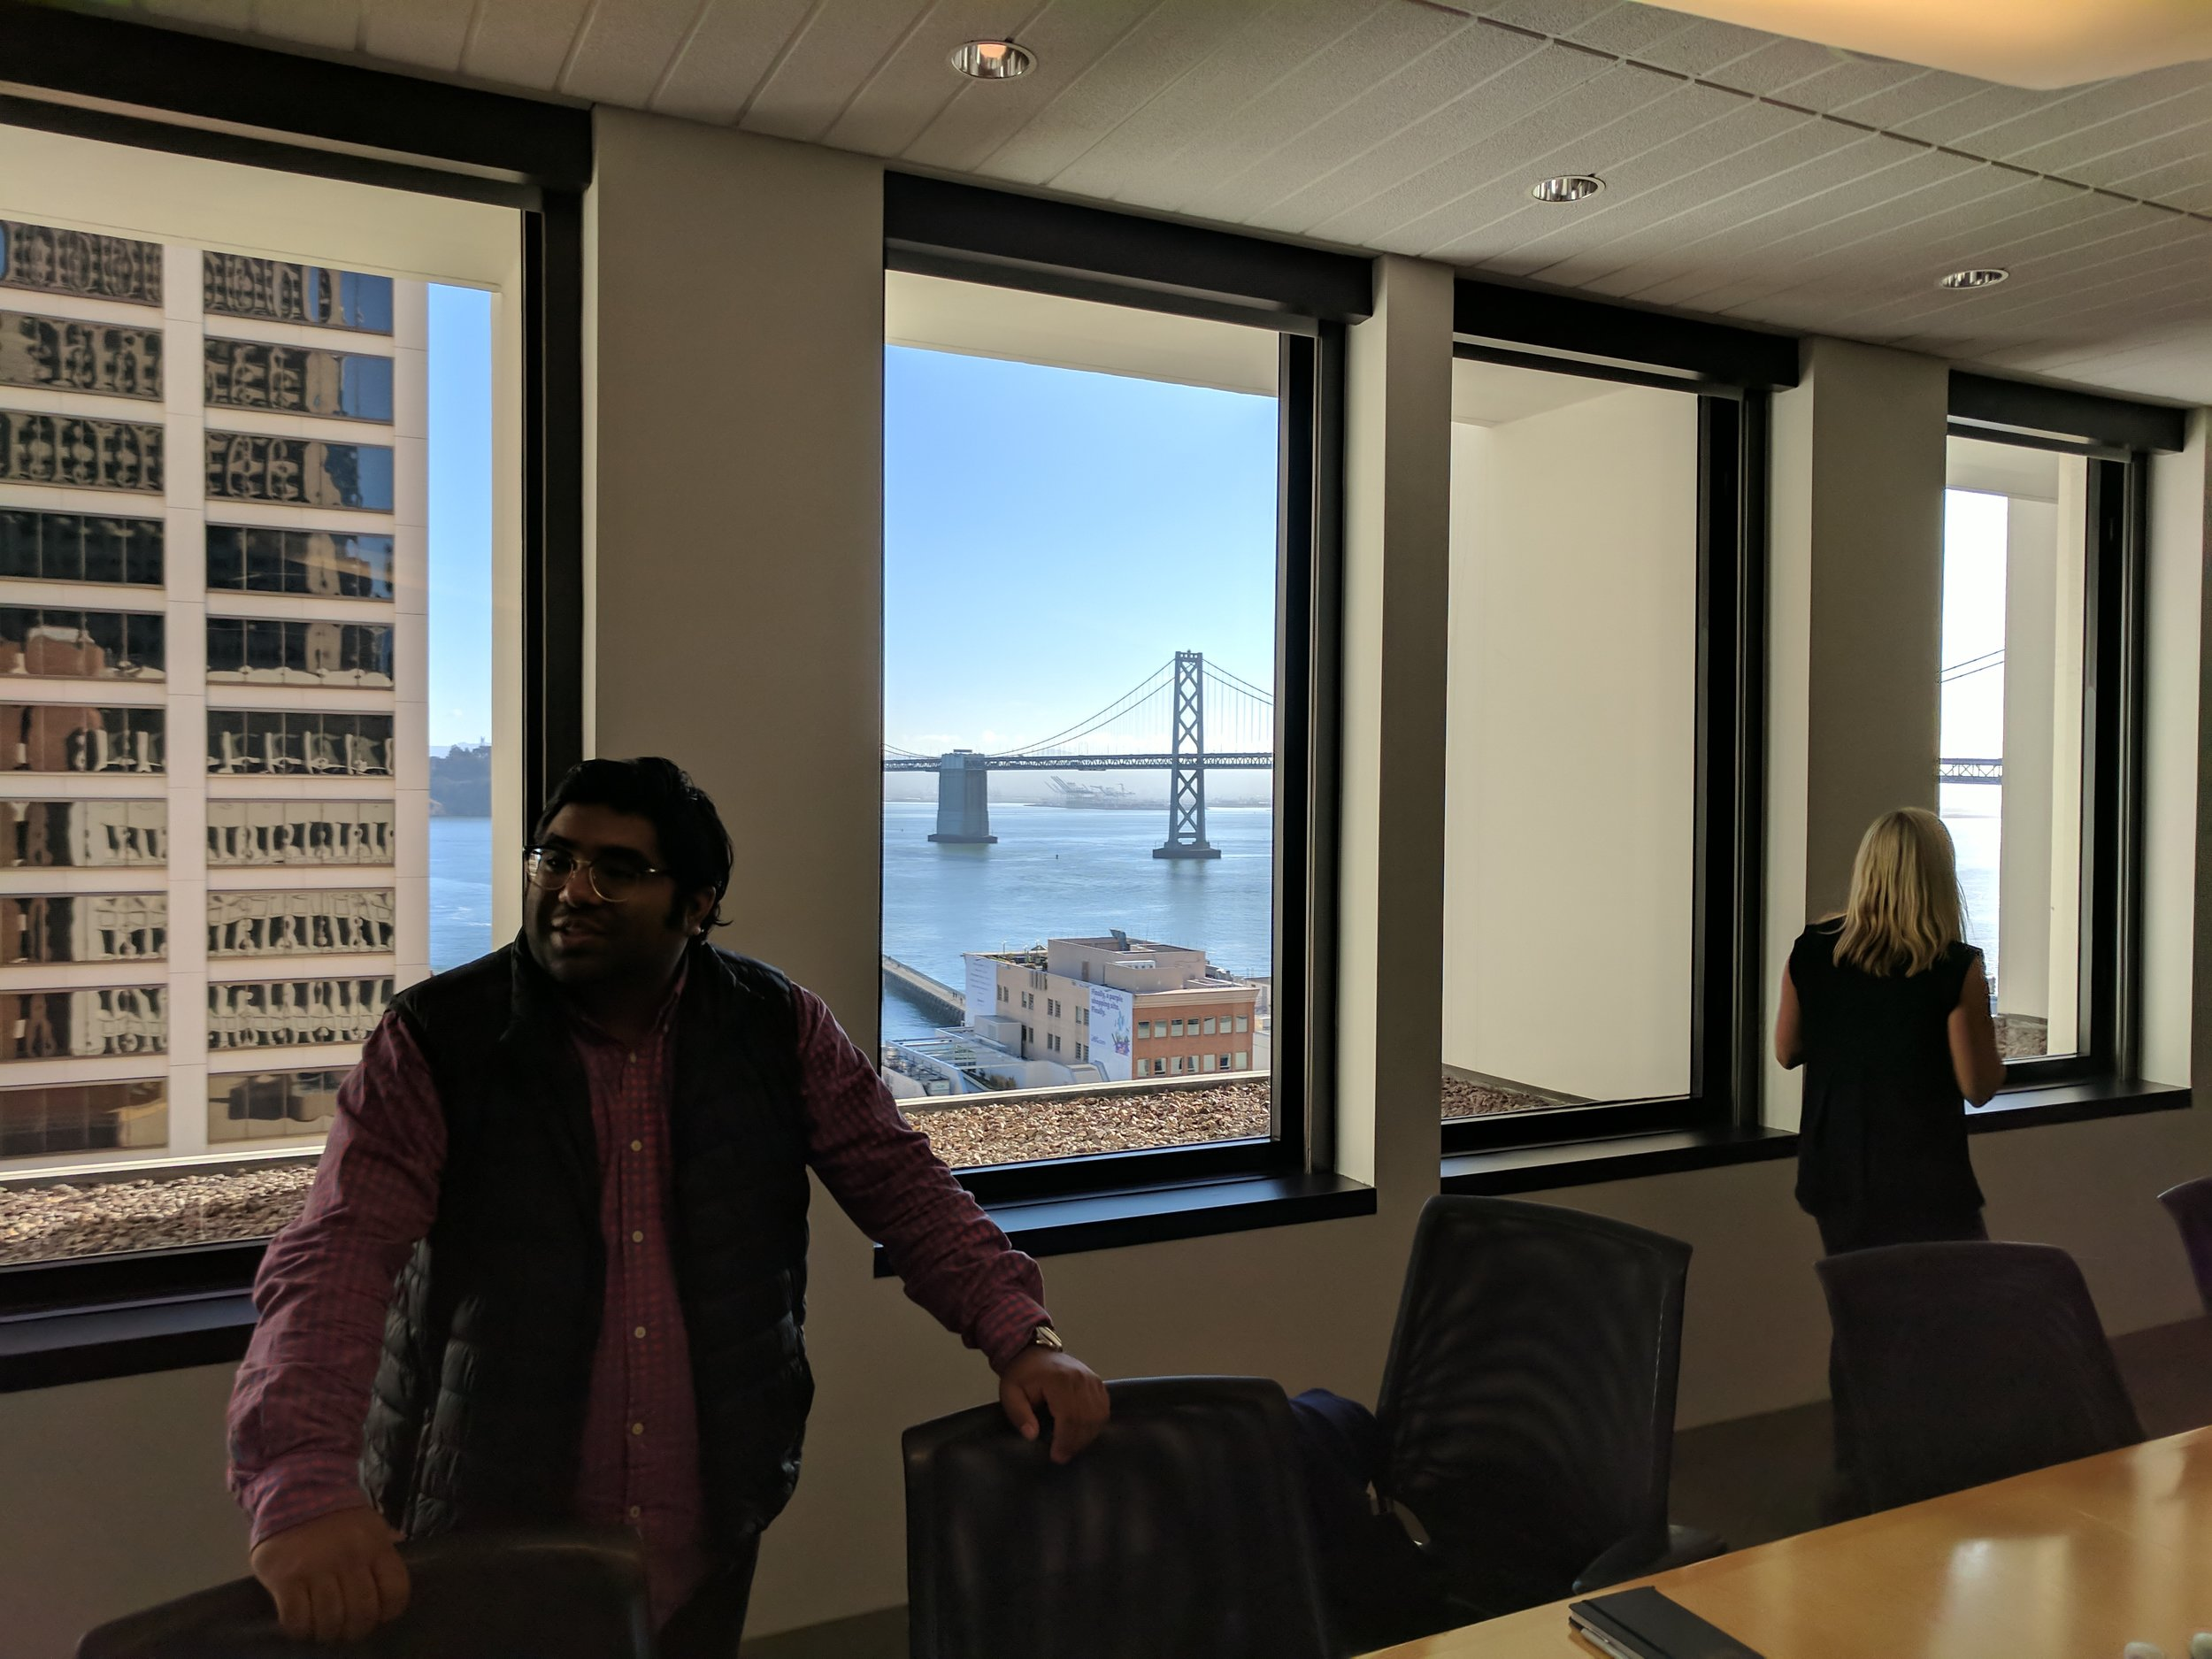 Our investor roundtable with Jaguar Land Rover's Tech Incubator took place at Orange Fab, with an unmistakably San Francisco feel to it.